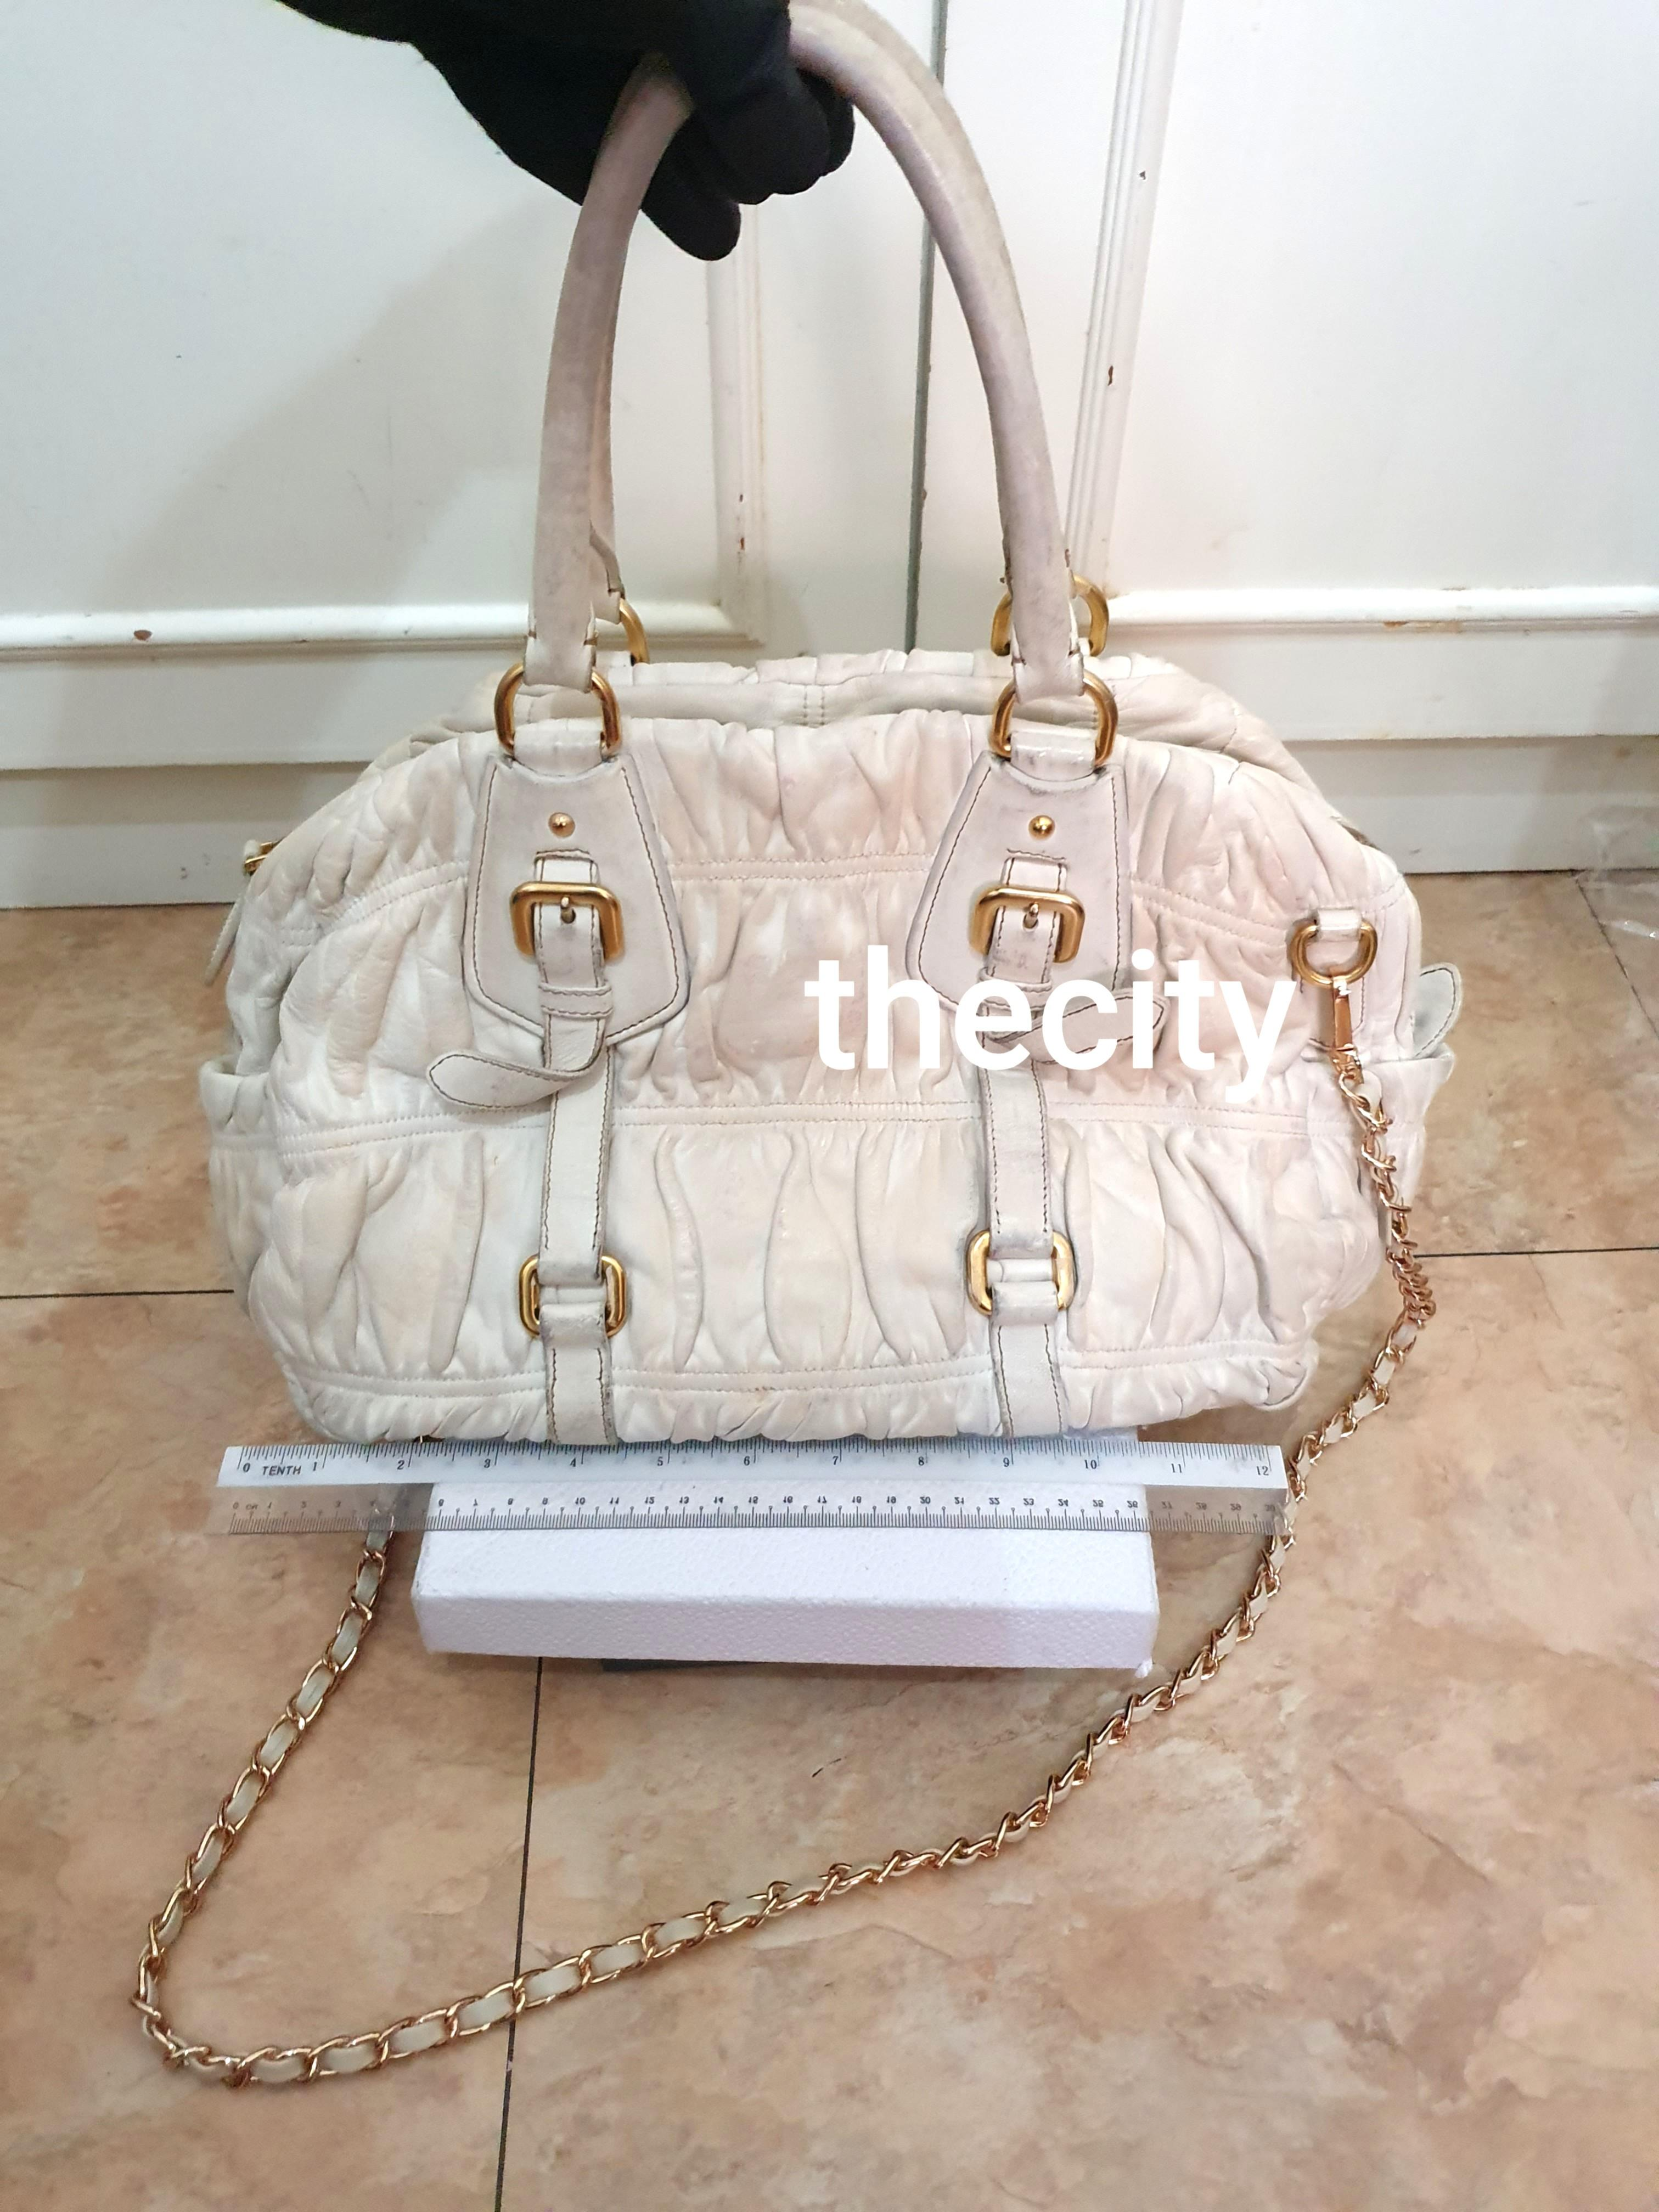 AUTHENTIC PRADA WHITE NAPPA GAUFRE LEATHER TOTE - WITH EXTRA ADD ON STRAP FOR CROSSBODY SLING - GOLD HARDWARE - PRADA BAG CHARM TAG INTACT